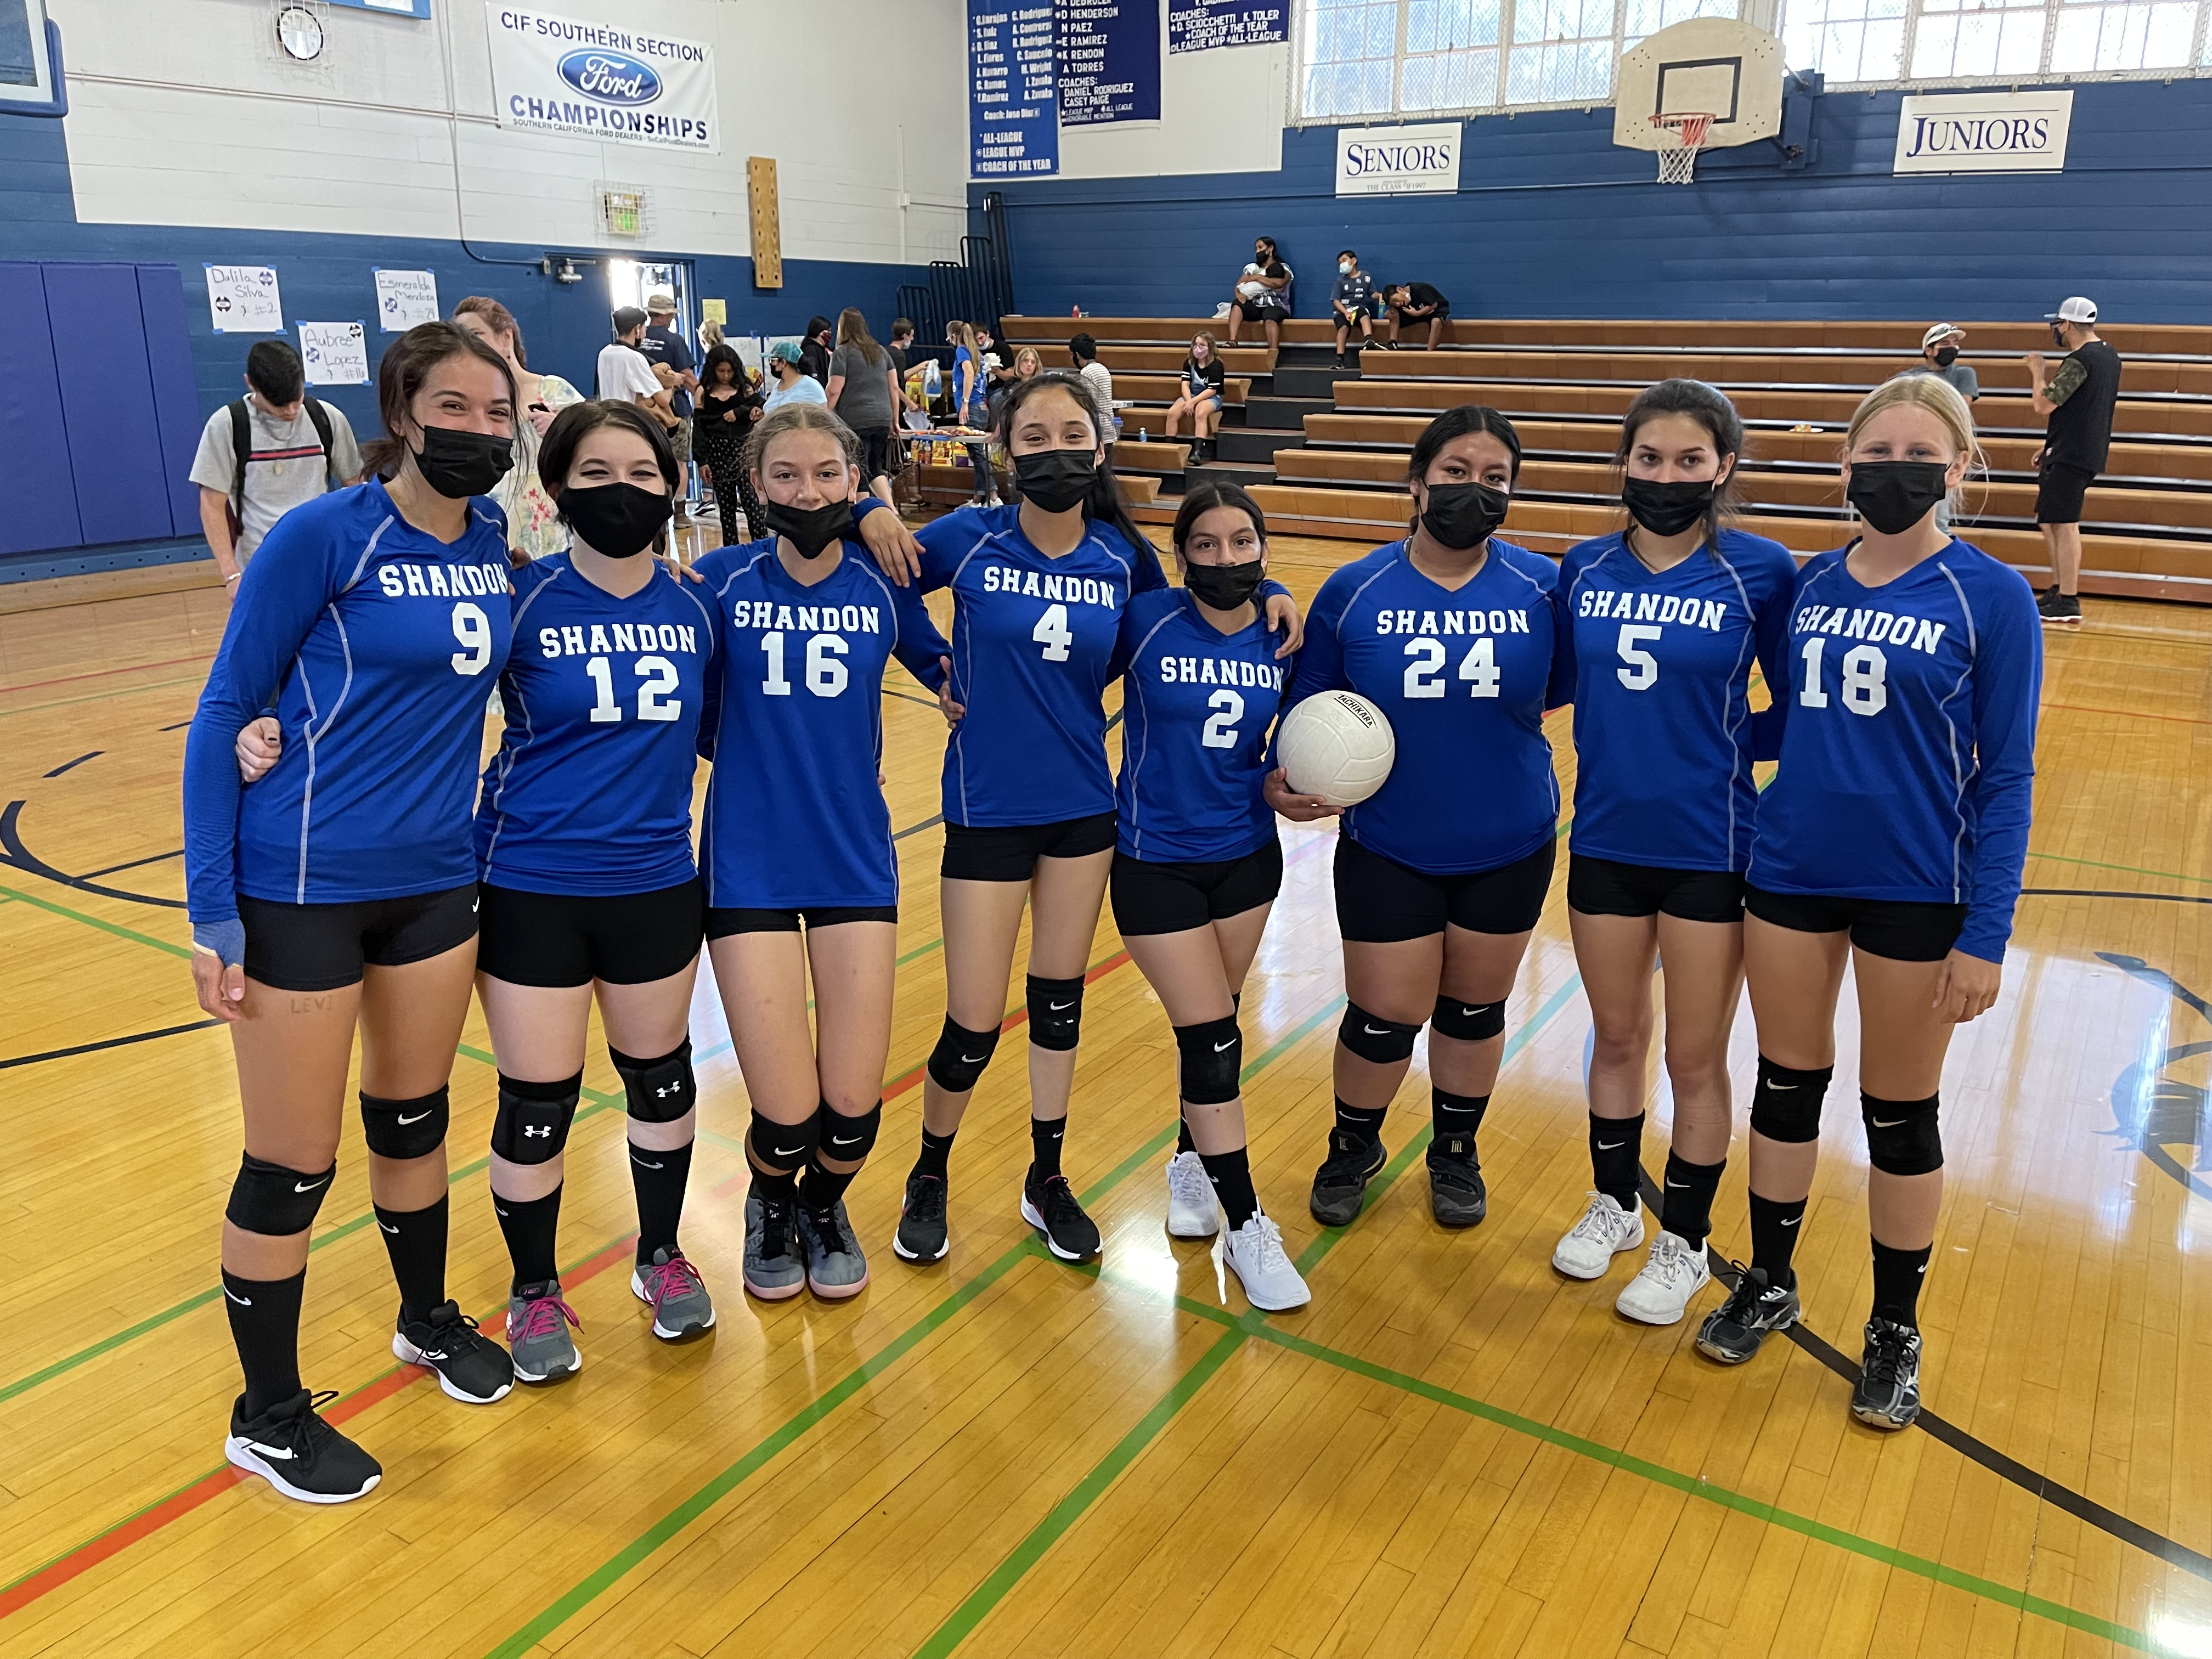 The Shandon High School Varsity Volleyball team. Thank you for your commitment and dedication this season! Special shout out to our Senior Players, we will miss you! Go Lady Outlaws!